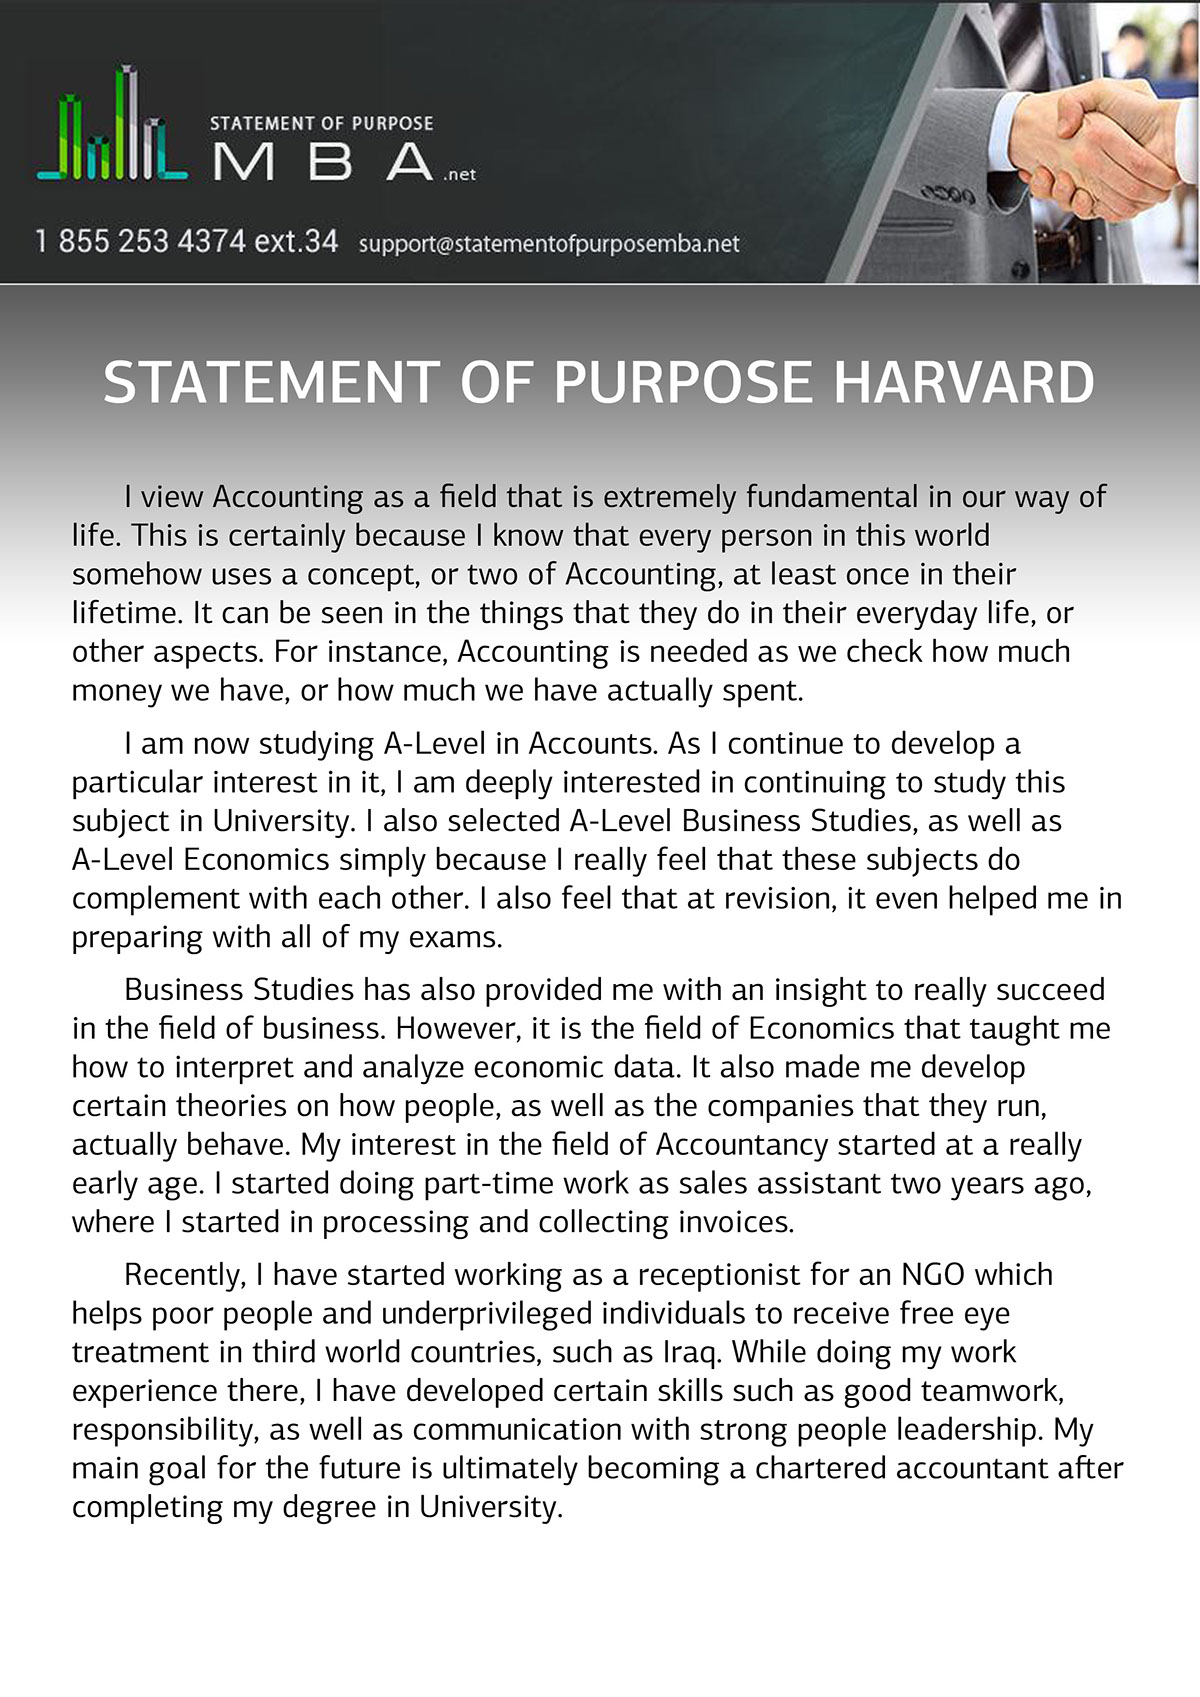 sample statement of purpose harvard on  to emphasize in each essay if you have any doubt just click on the link statementofpurposemba net statement of purpose harvard mba school